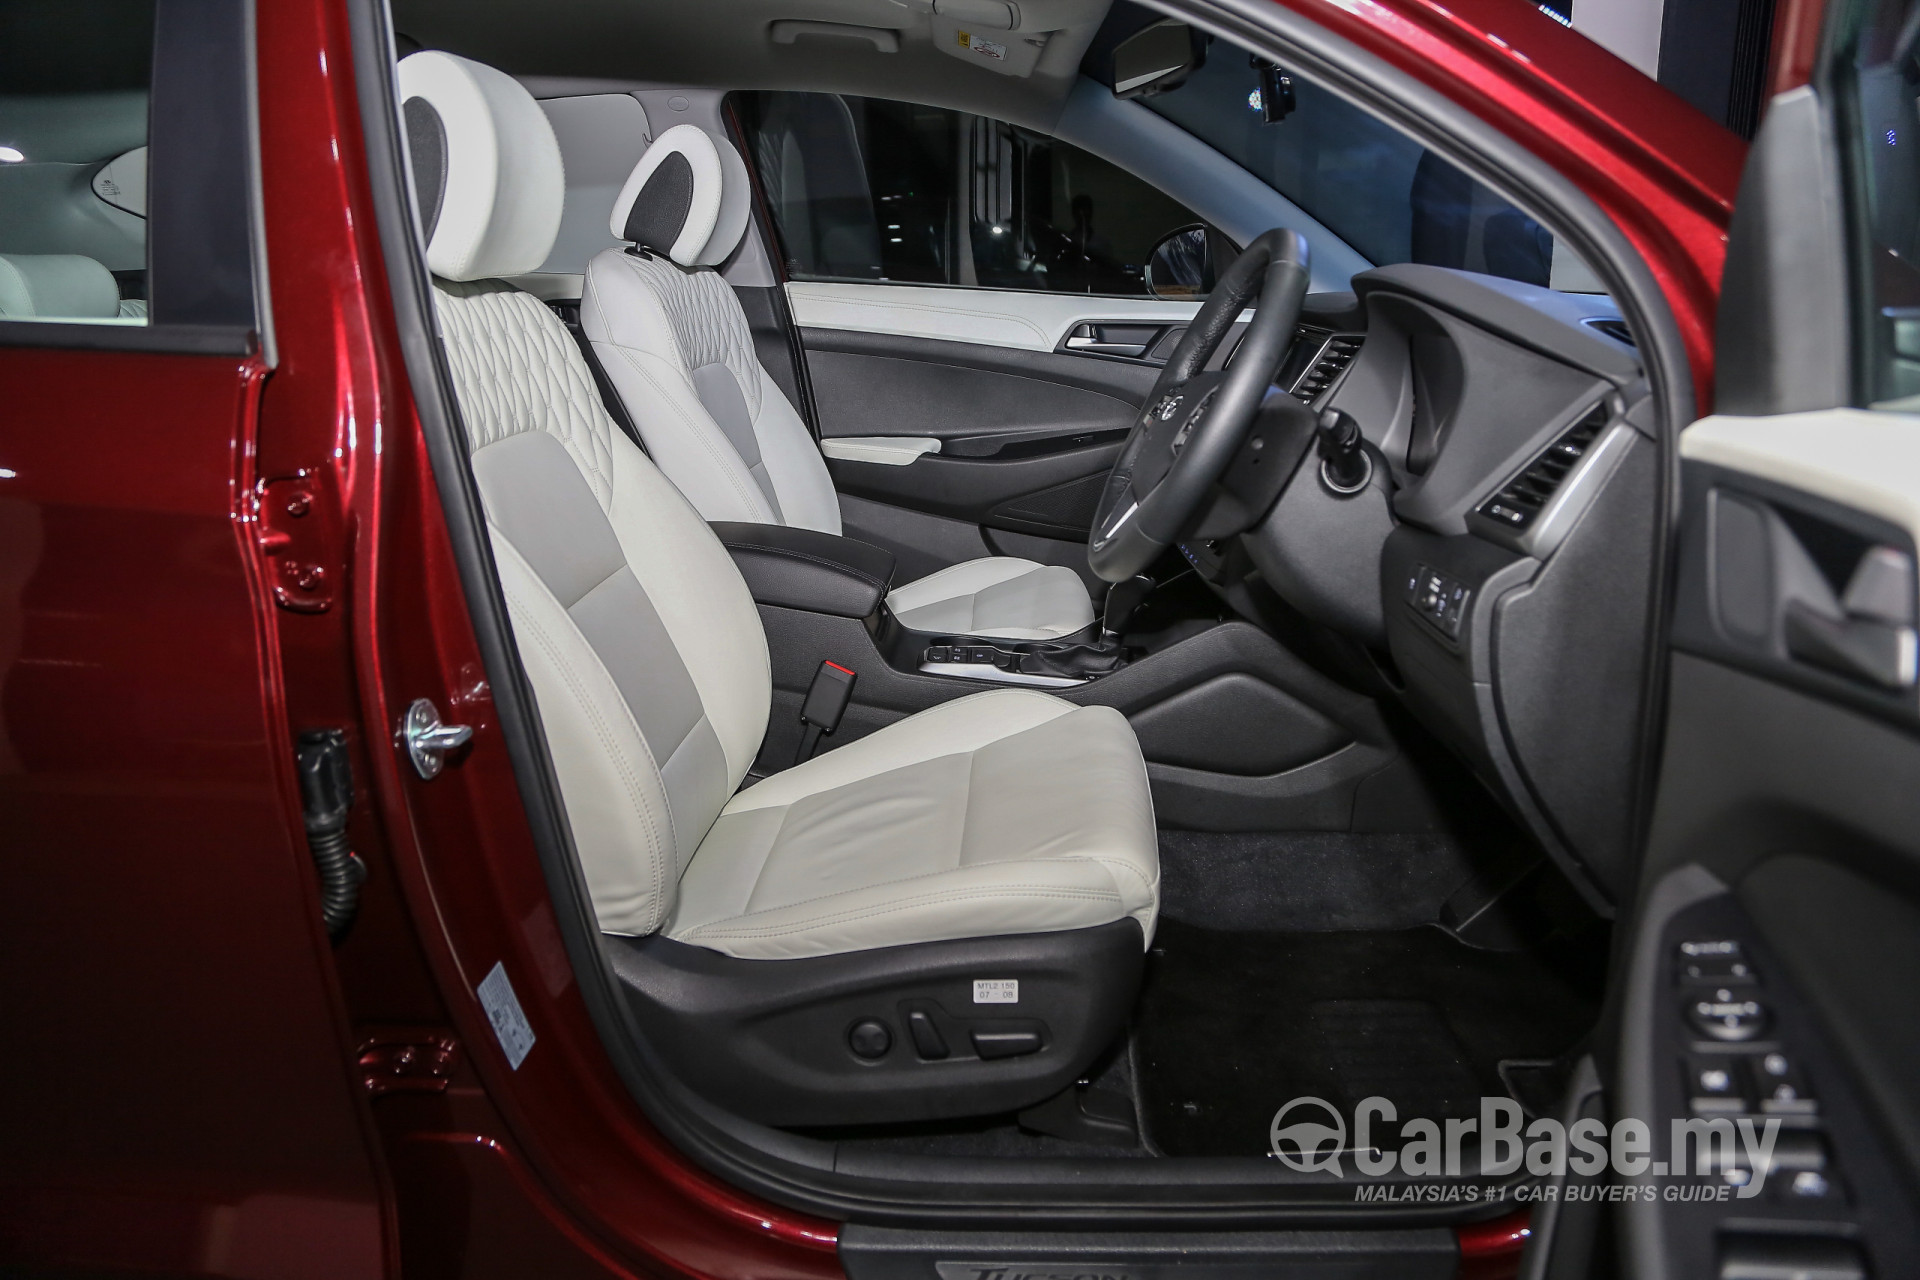 hyundai tucson tl 2015 interior image 25889 in malaysia reviews specs prices. Black Bedroom Furniture Sets. Home Design Ideas